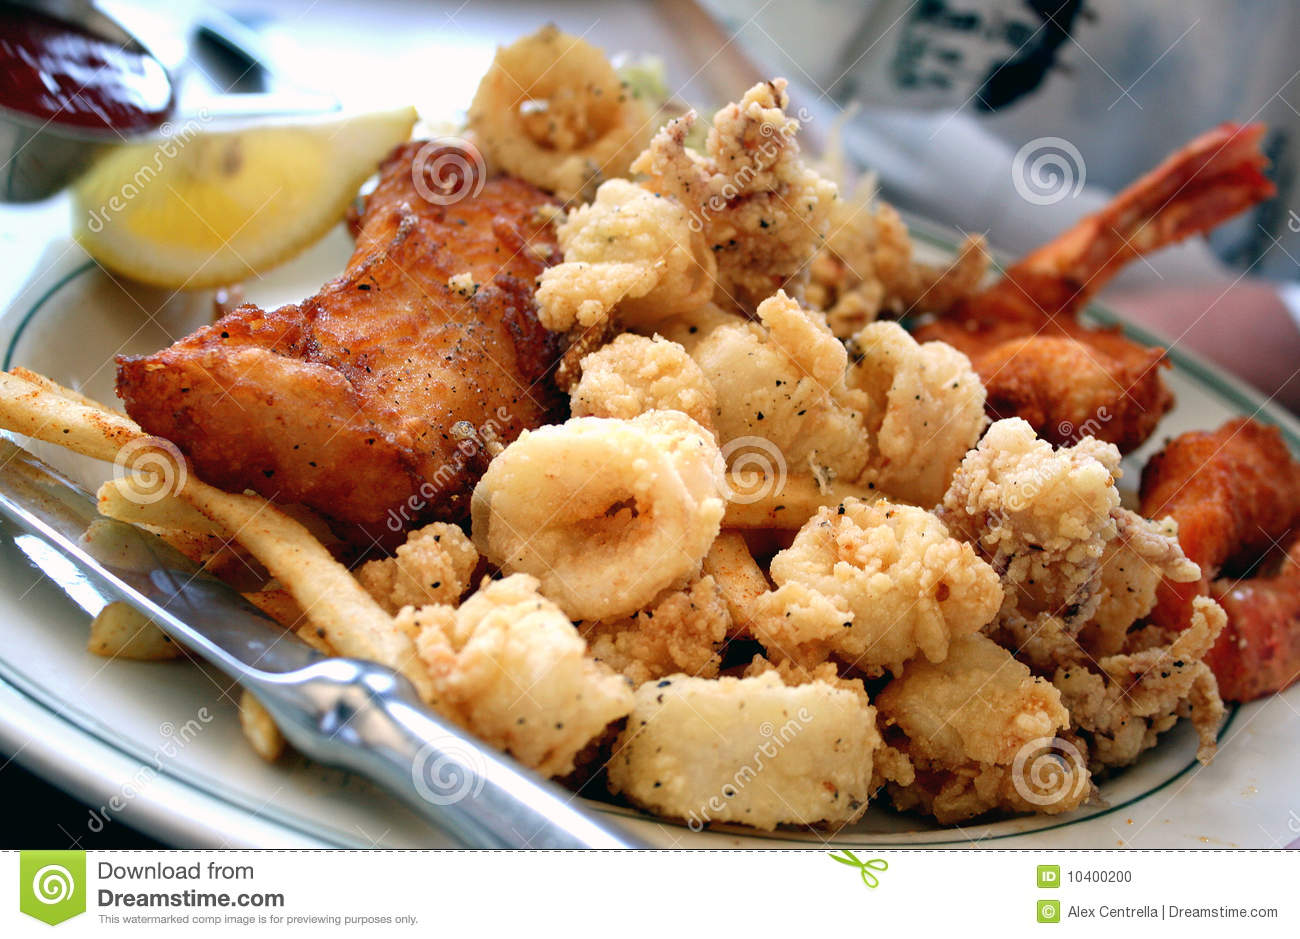 Seafood Dinner Stock Photo - Image: 10400200